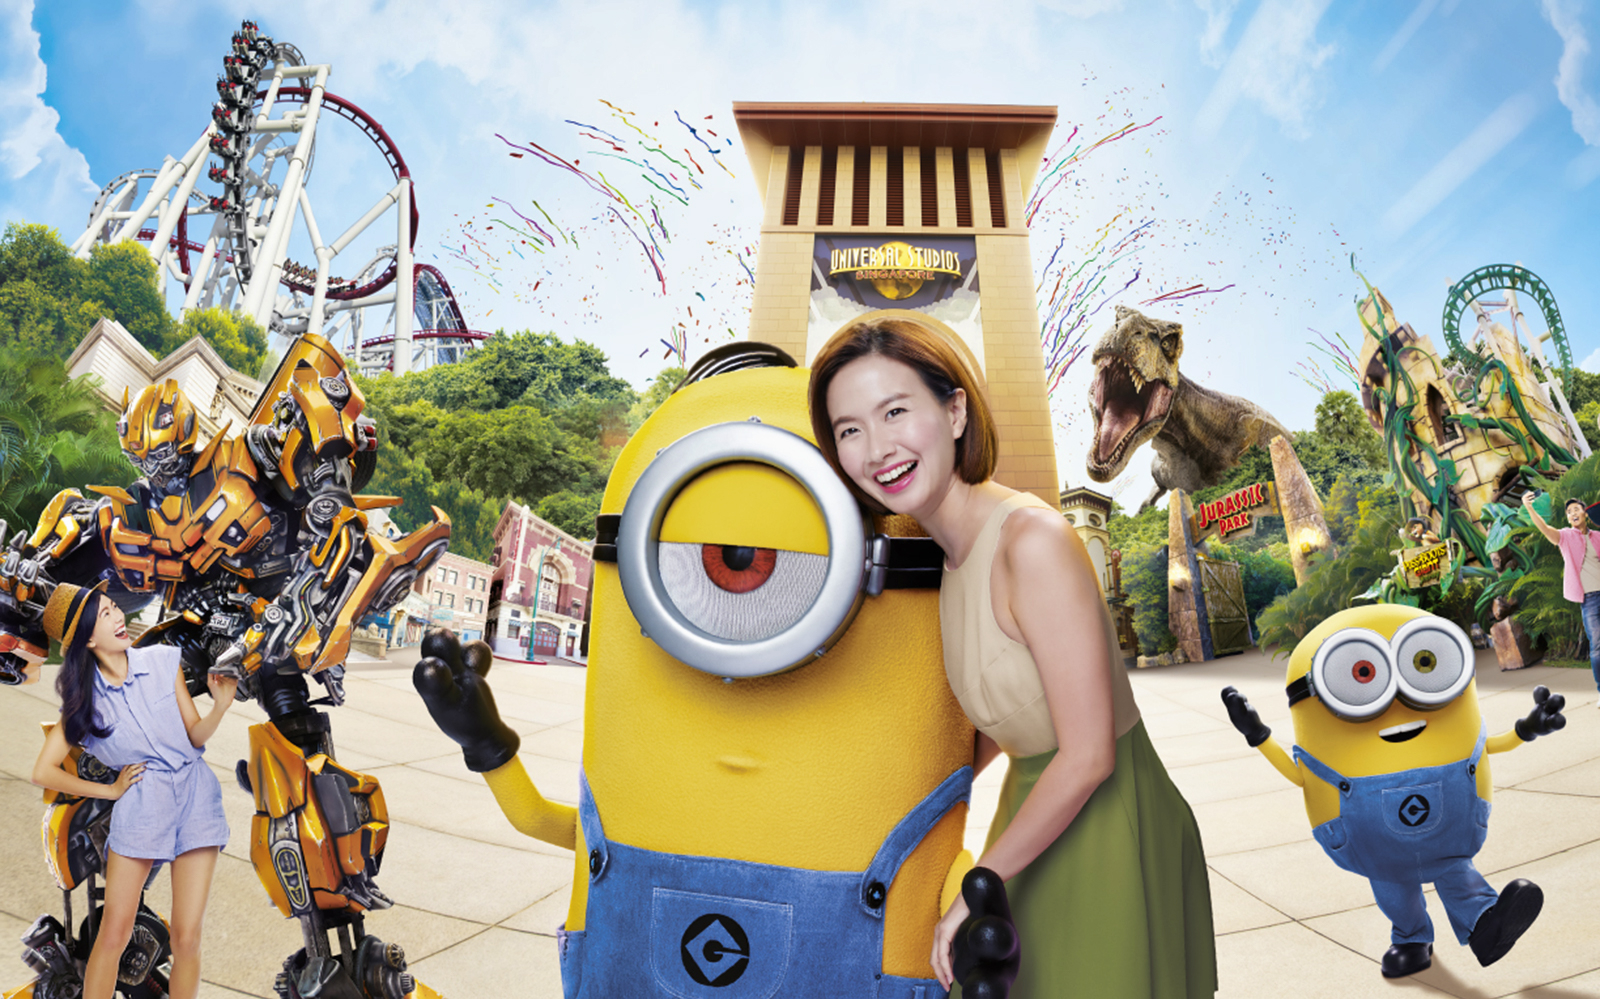 528383f6 7da6 4f5c 9f0d d7dbf7c6f25c 7442 singapore universal studio singapore one day ticket 07